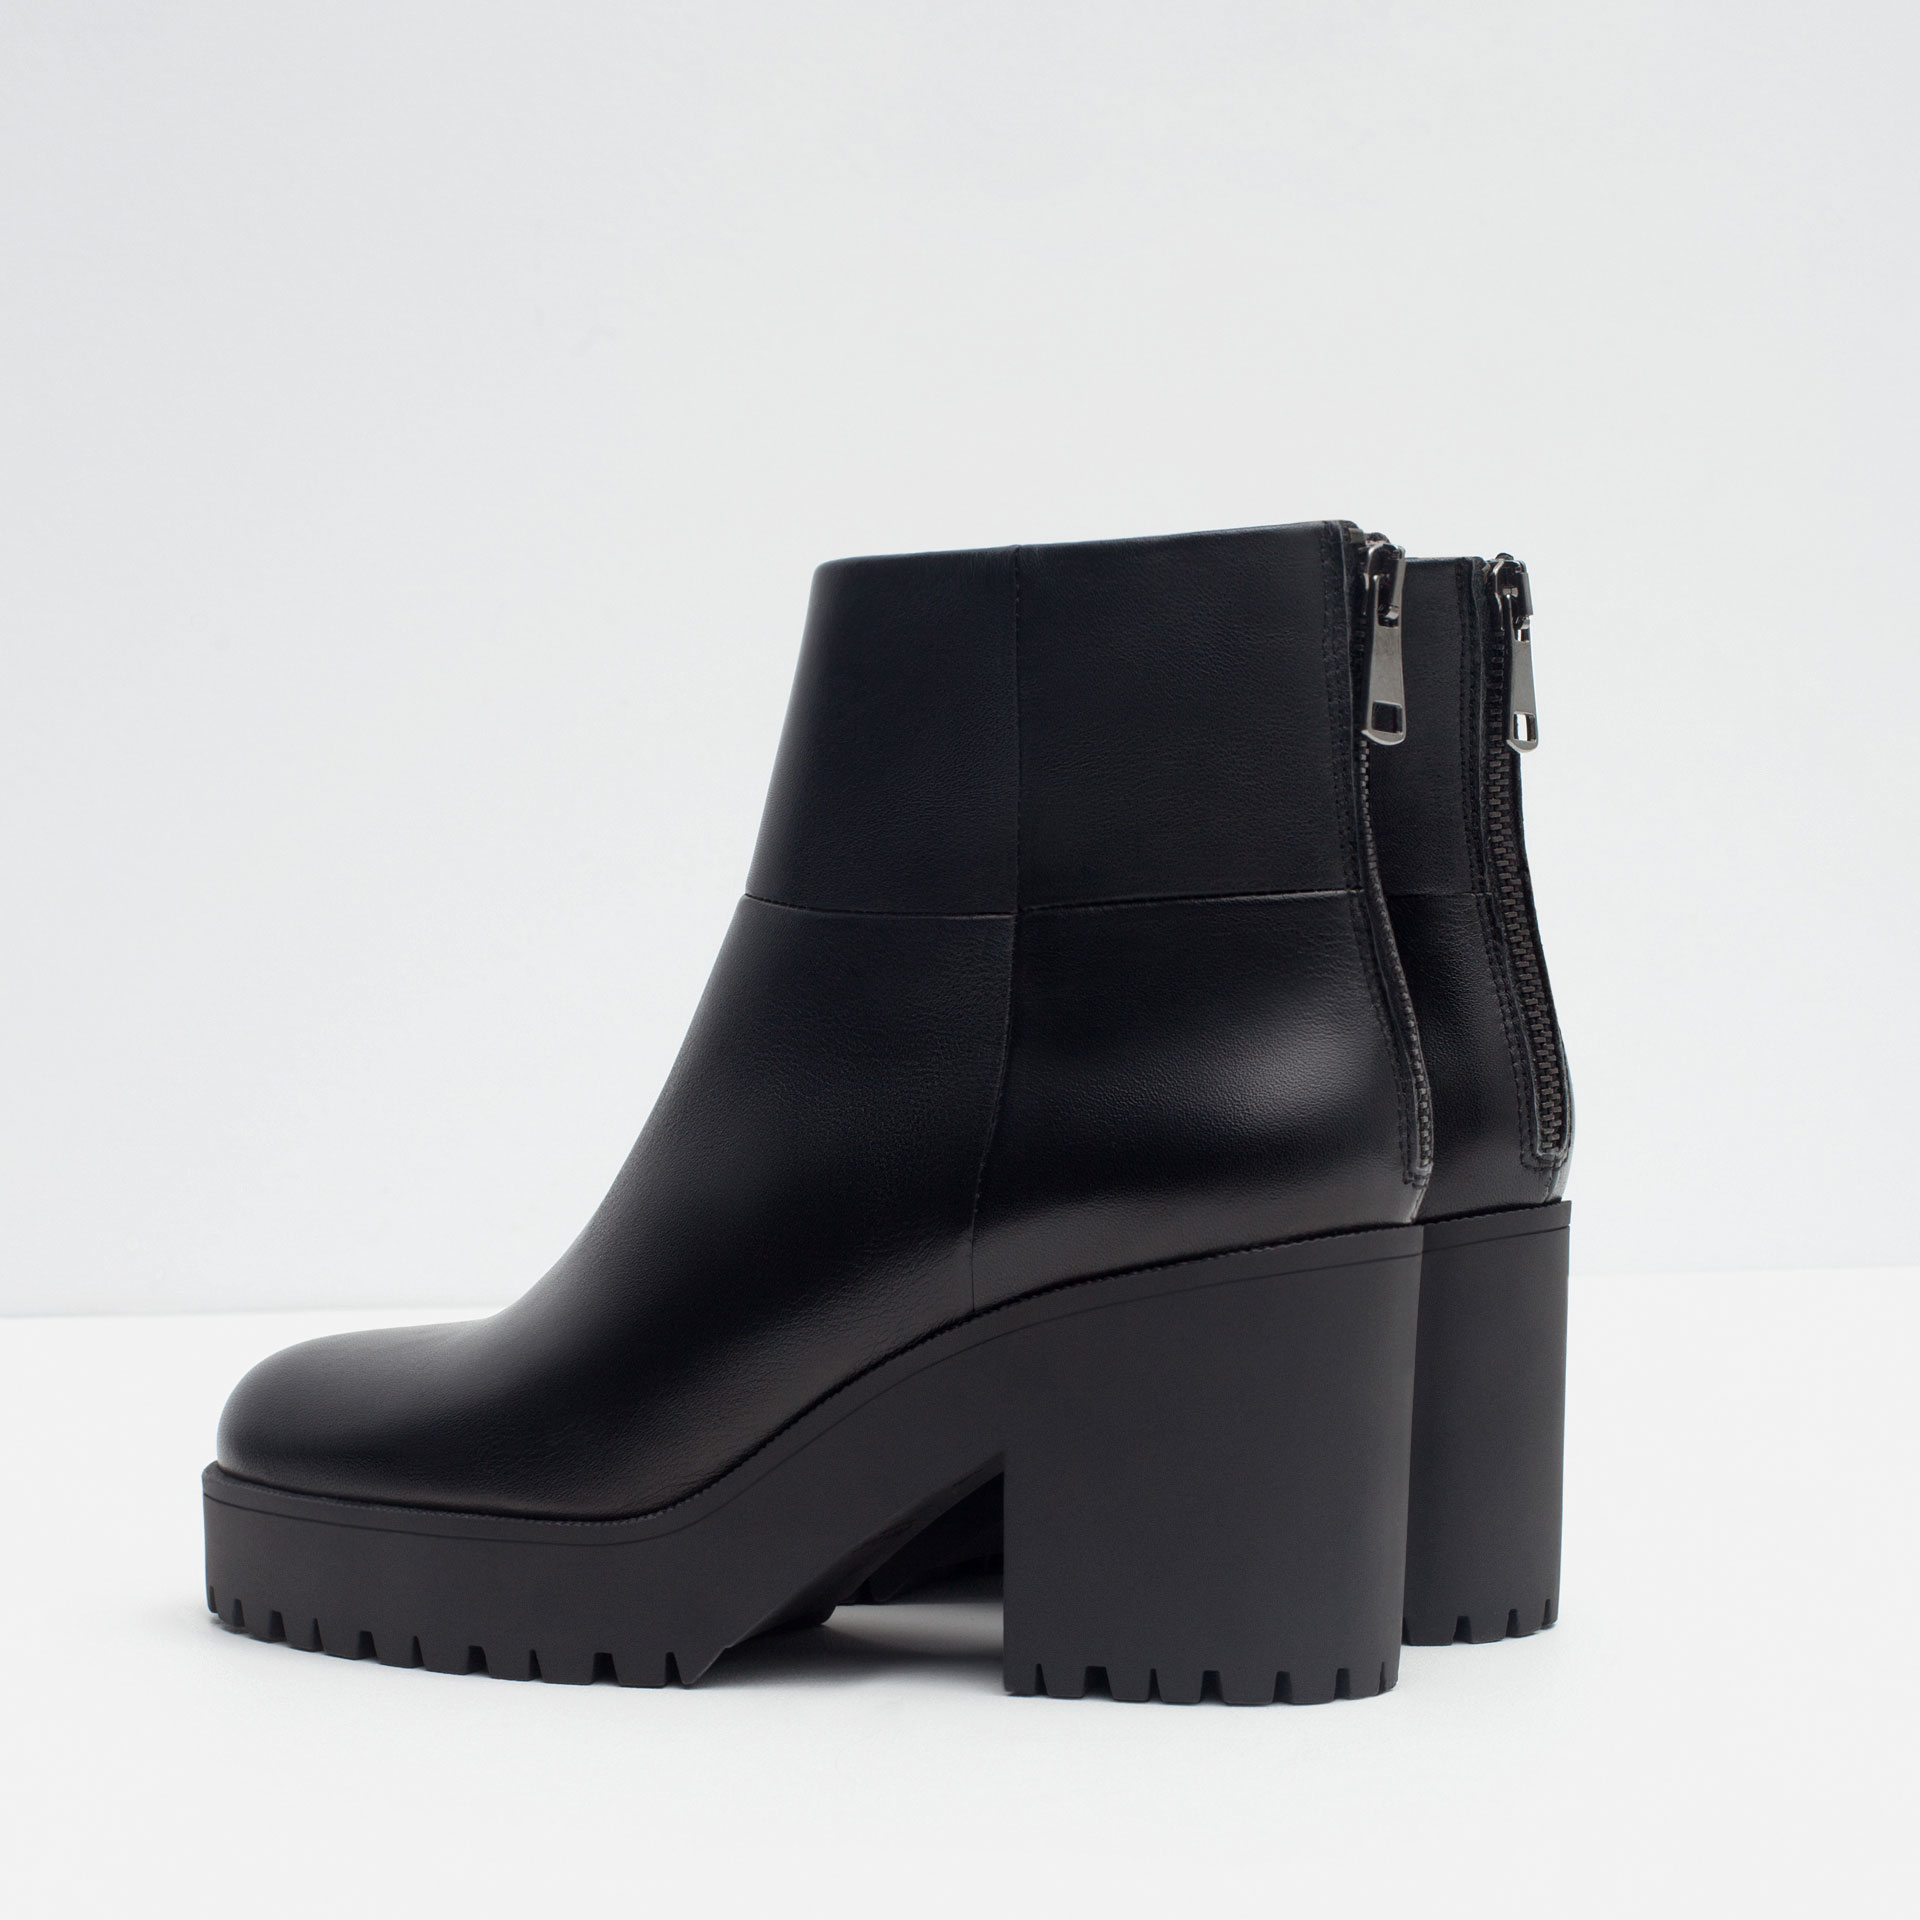 zara high heel leather ankle boots with track sole in